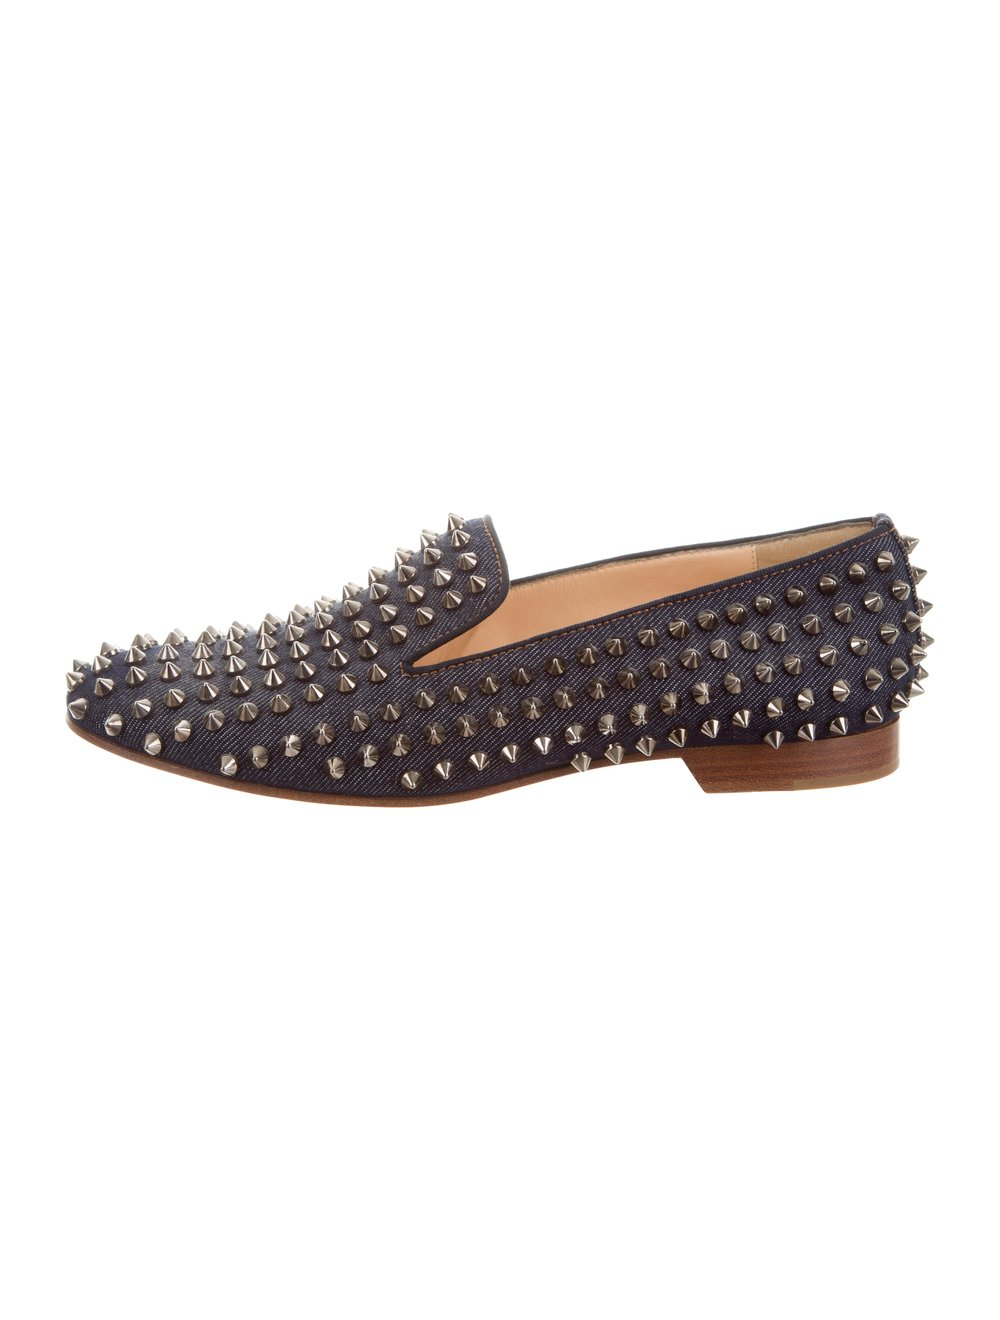 Christian Louboutin Denim Rolling Spikes Loafers